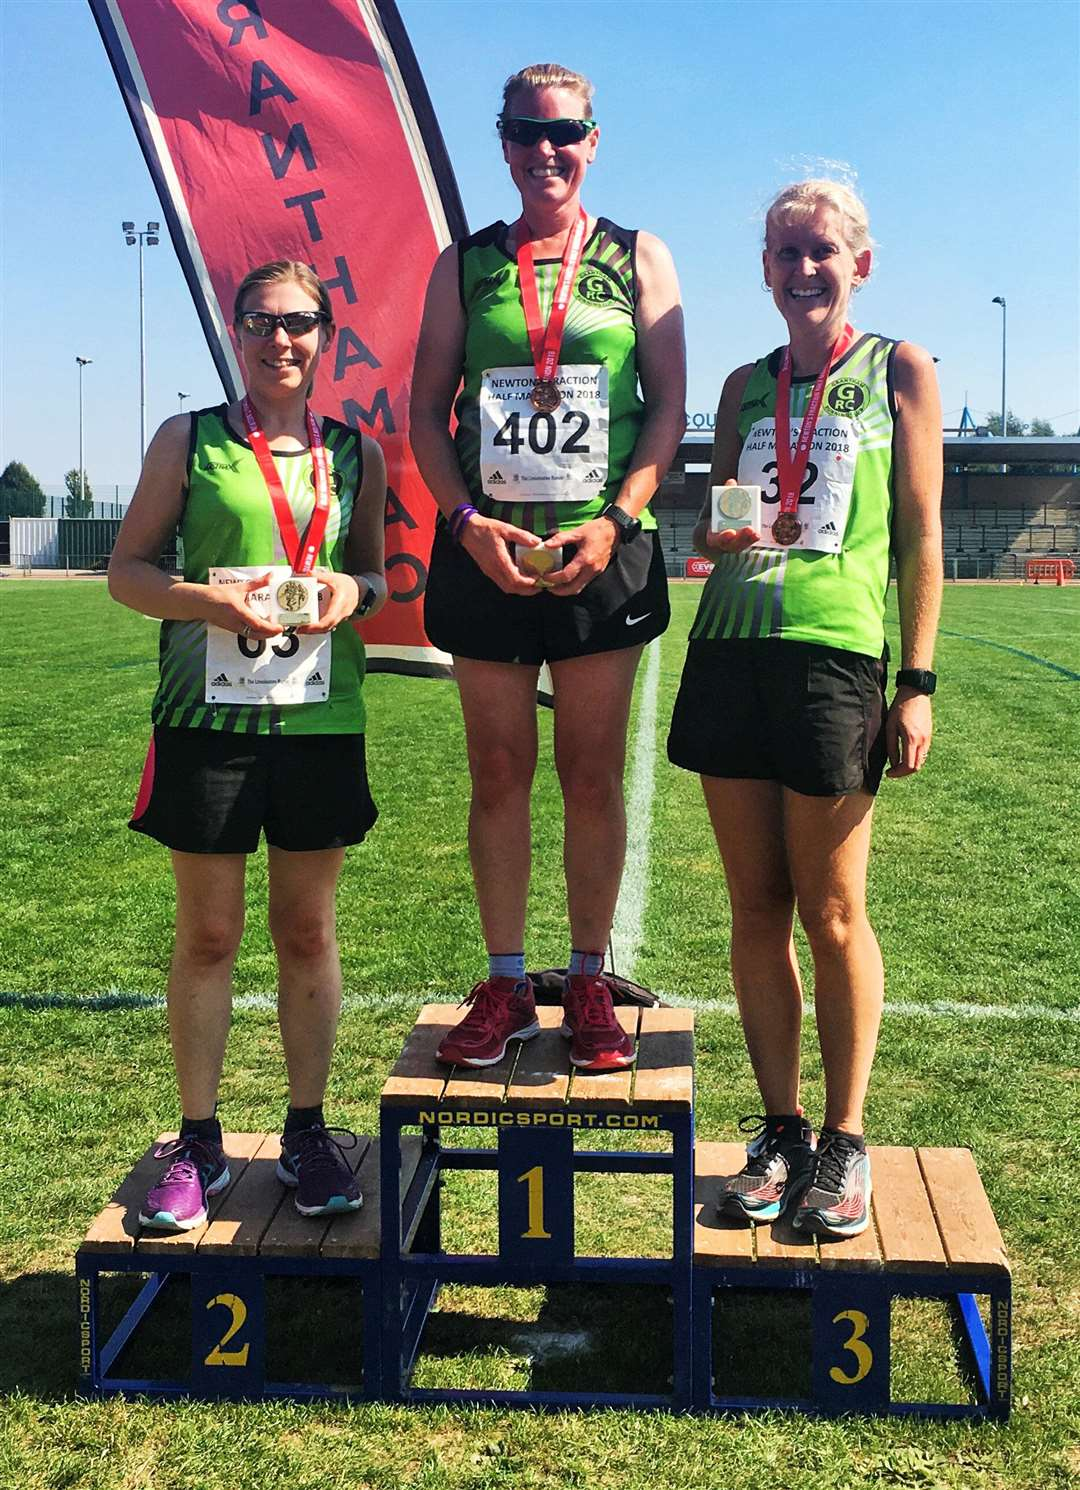 (L to R): Hannah San Jose; Helen Brown; and Caroline Davis - winners of the Women's Team Prize for Grantham Running Club at the Newton's Fraction Half Marathon, held on Sunday 2nd September 2018. Image courtesy of Edina Burns for editorial use only. (4091477)